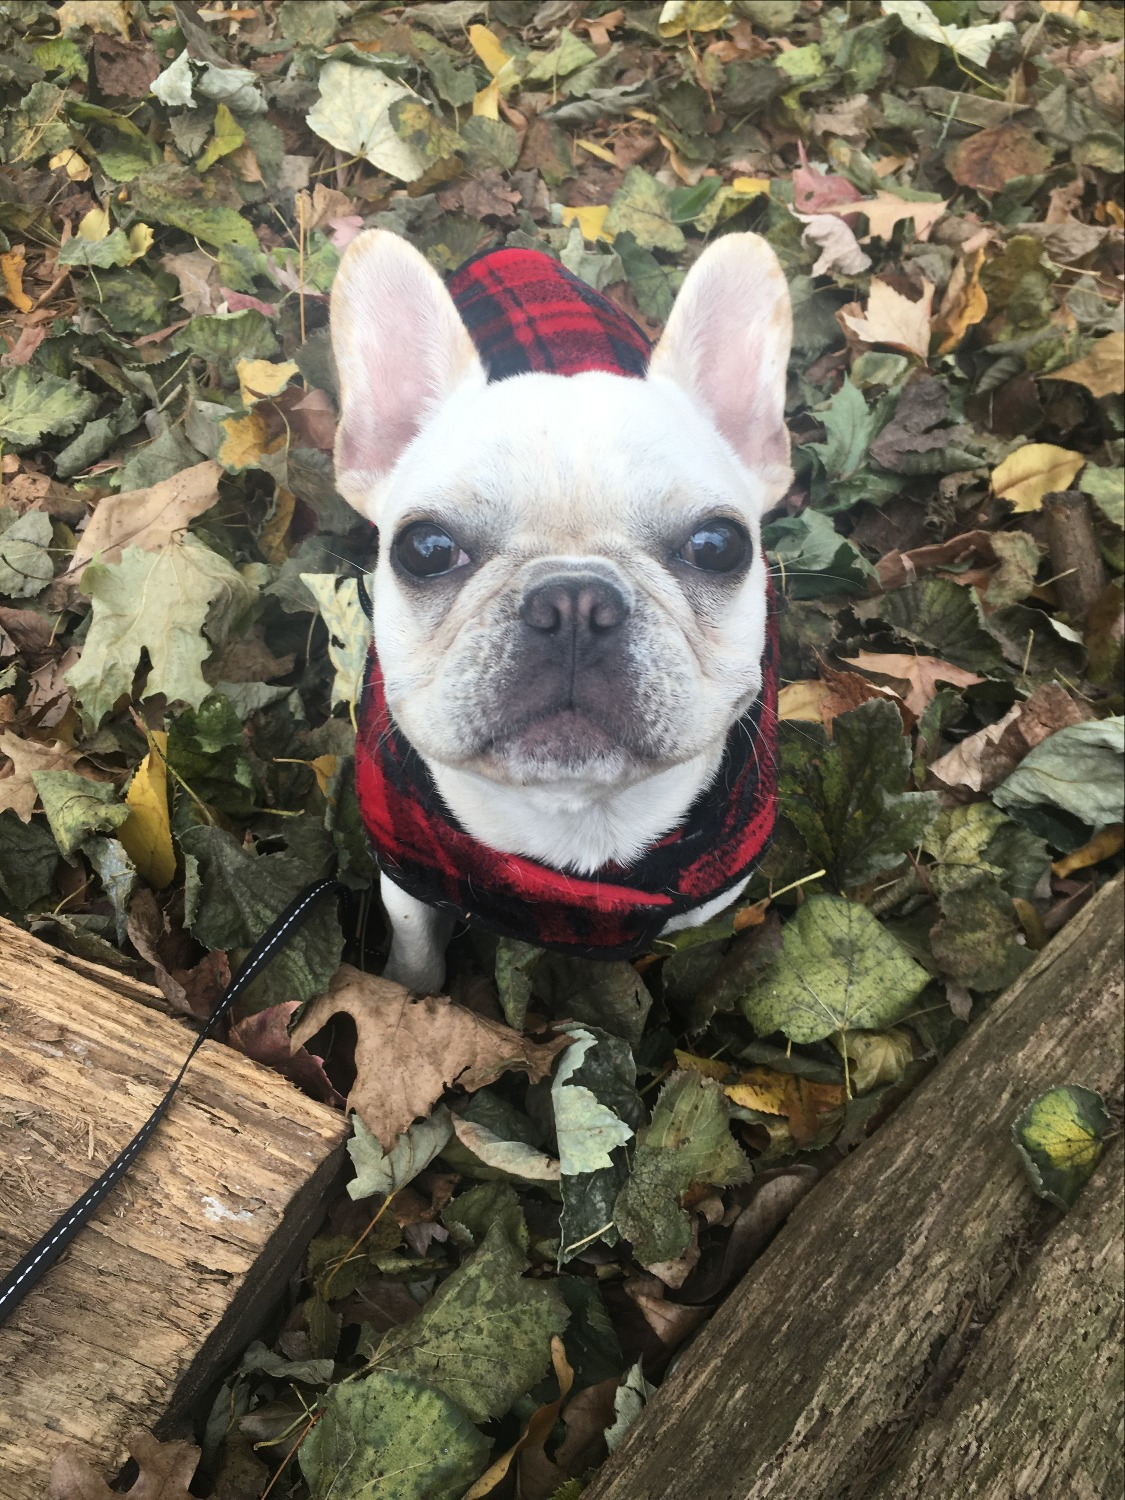 Gunther having fun playing in the leaves!